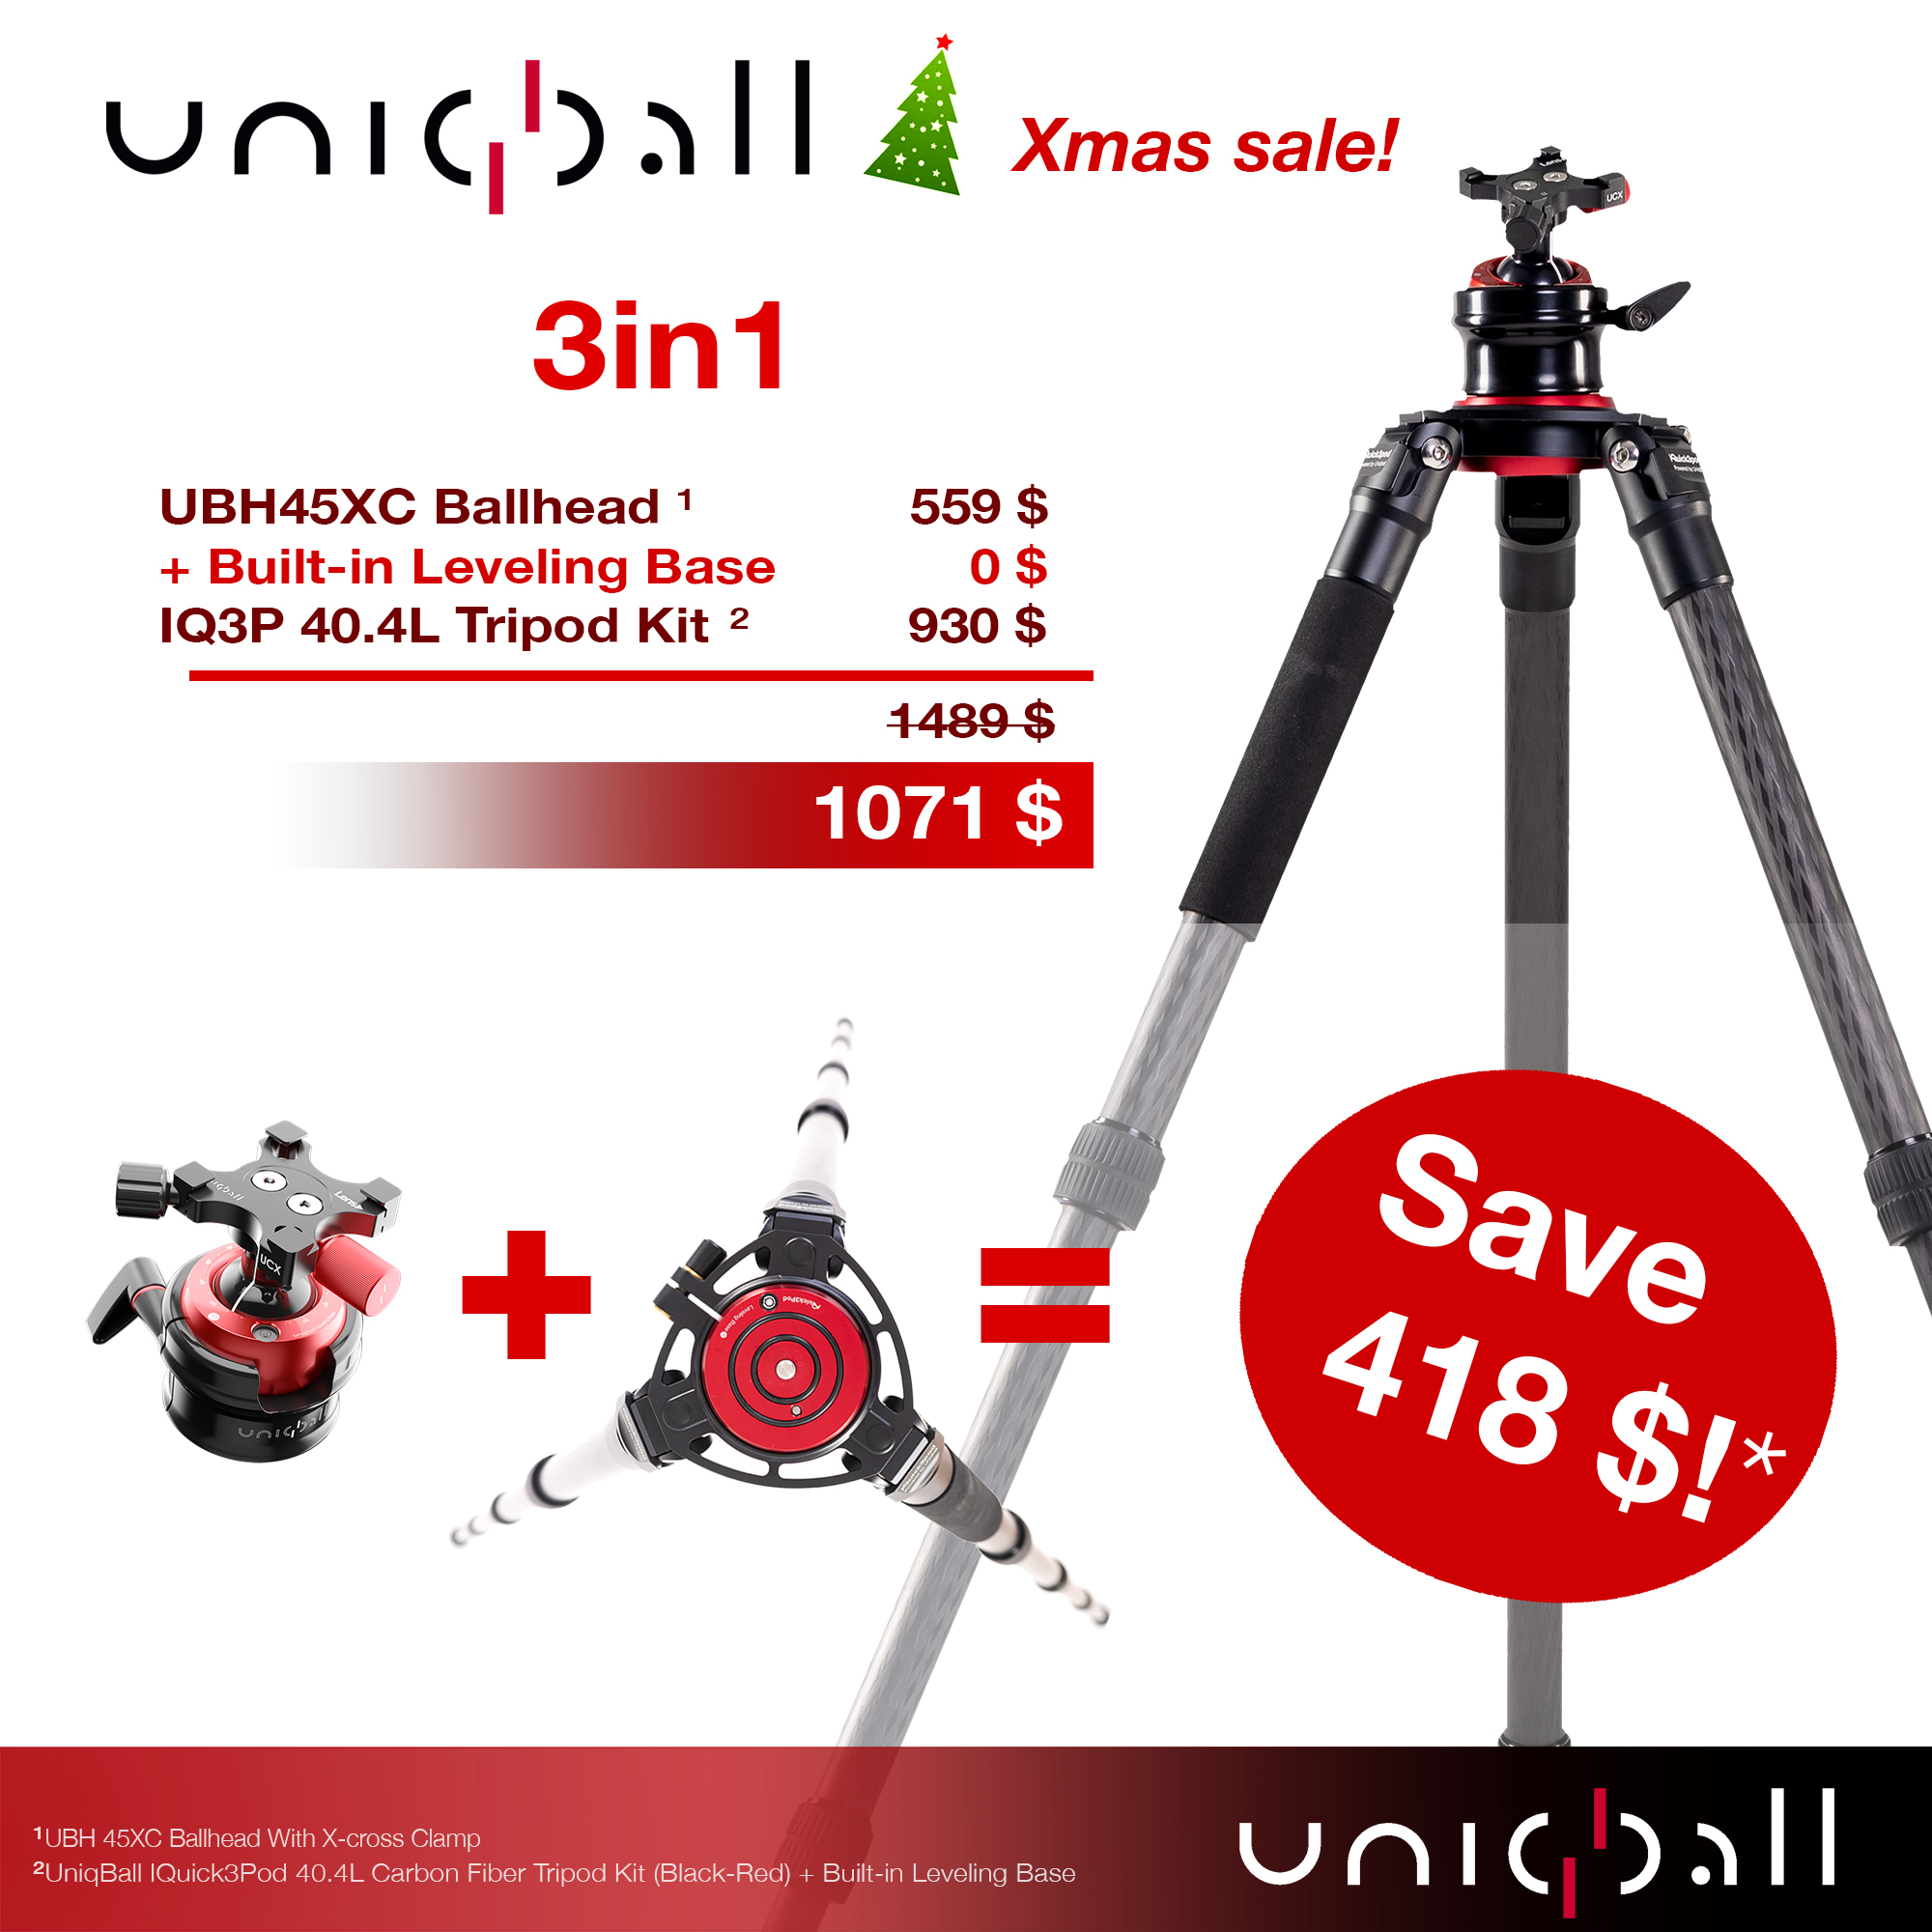 UniqBall UBH 45XC &  IQ3P 40.4L Holiday Promo